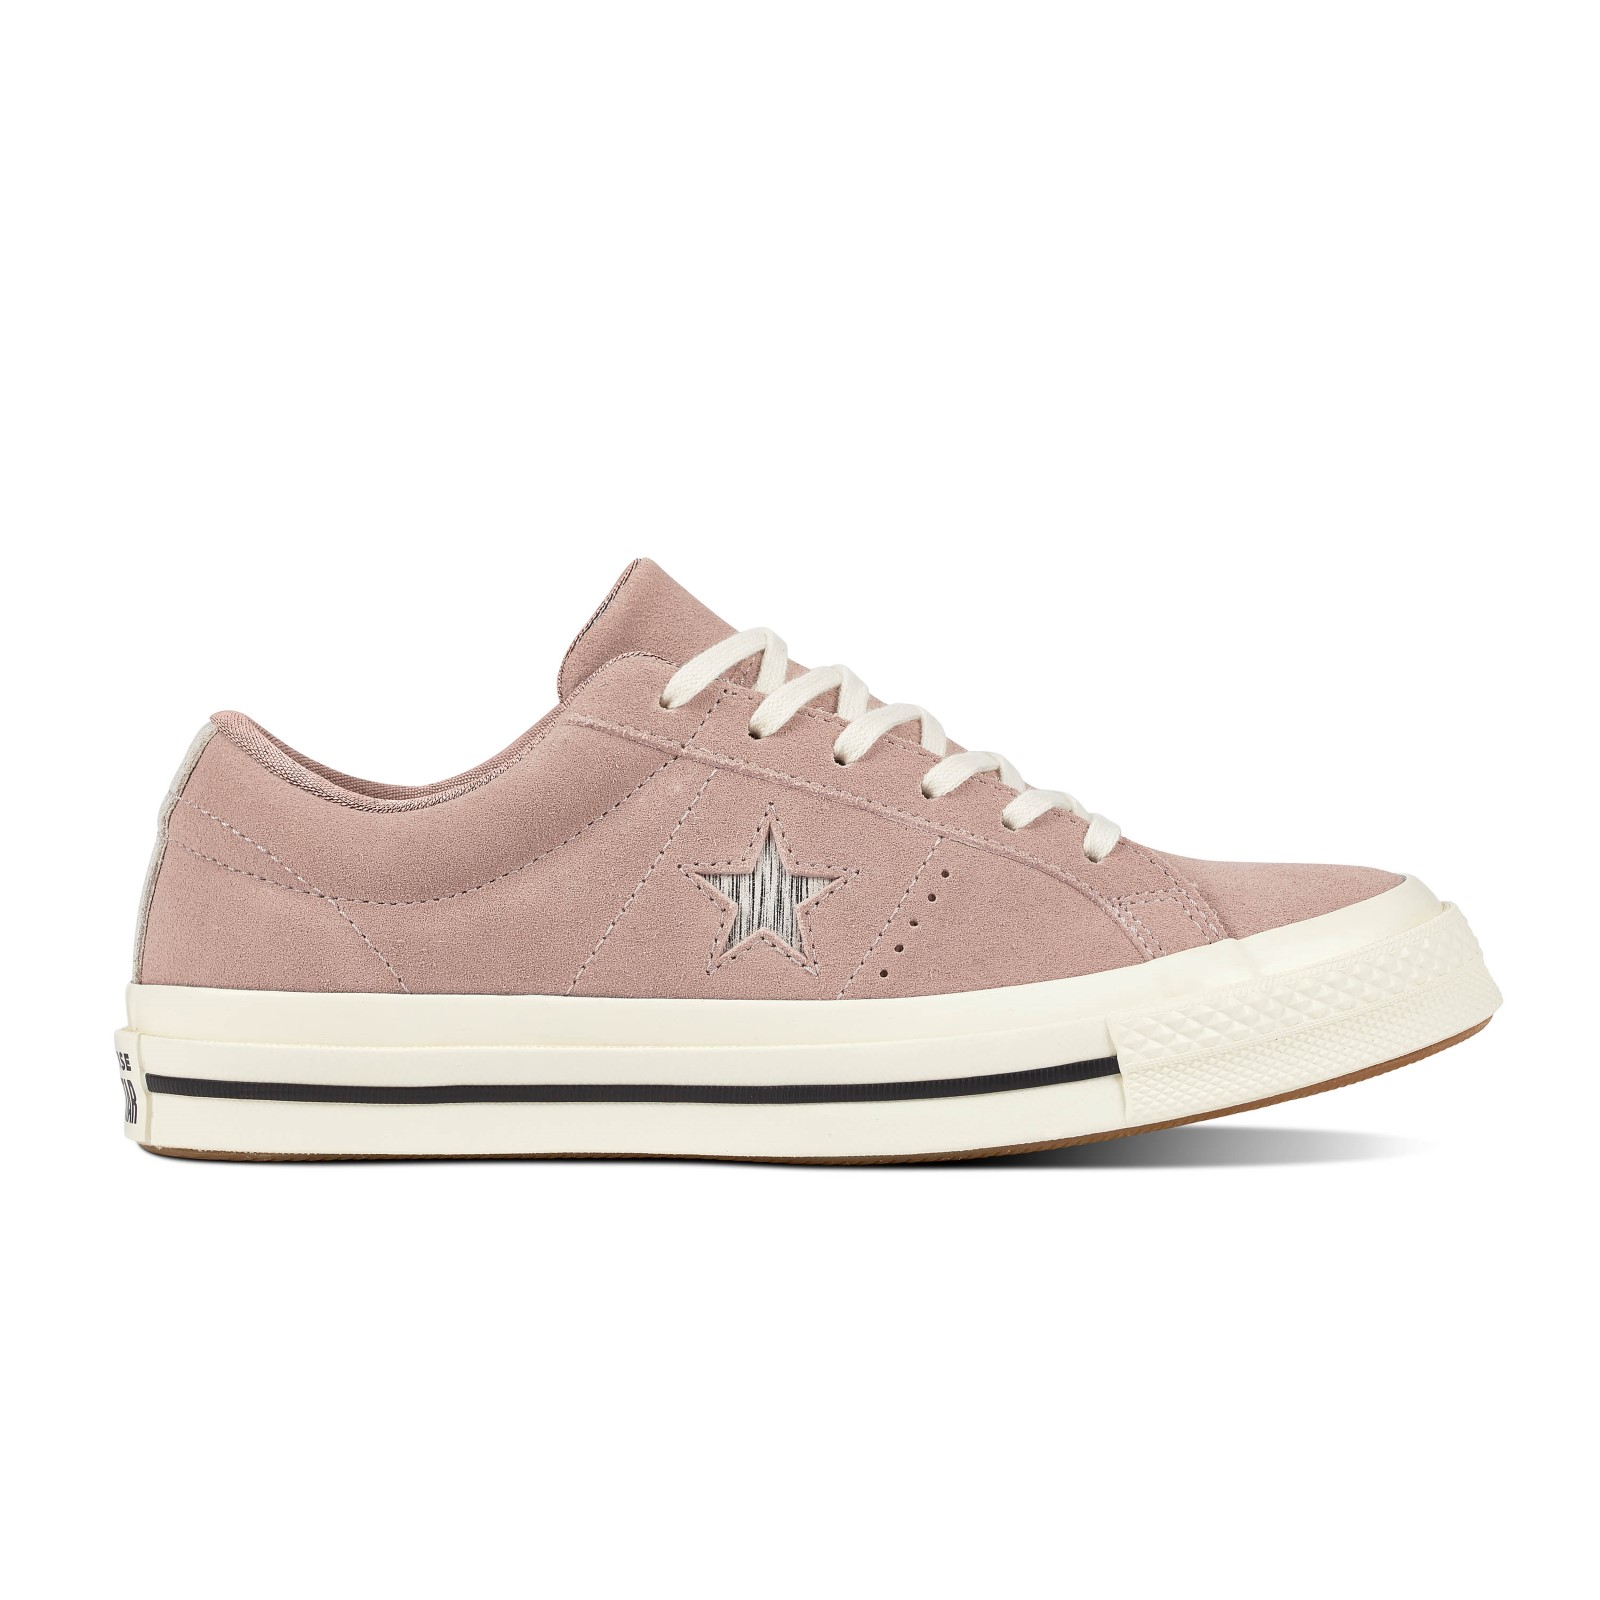 1b4ee9425ce Converse pudrové kožené tenisky Chuck Taylor One Star OX Diffused  Taupe Silver Egret -